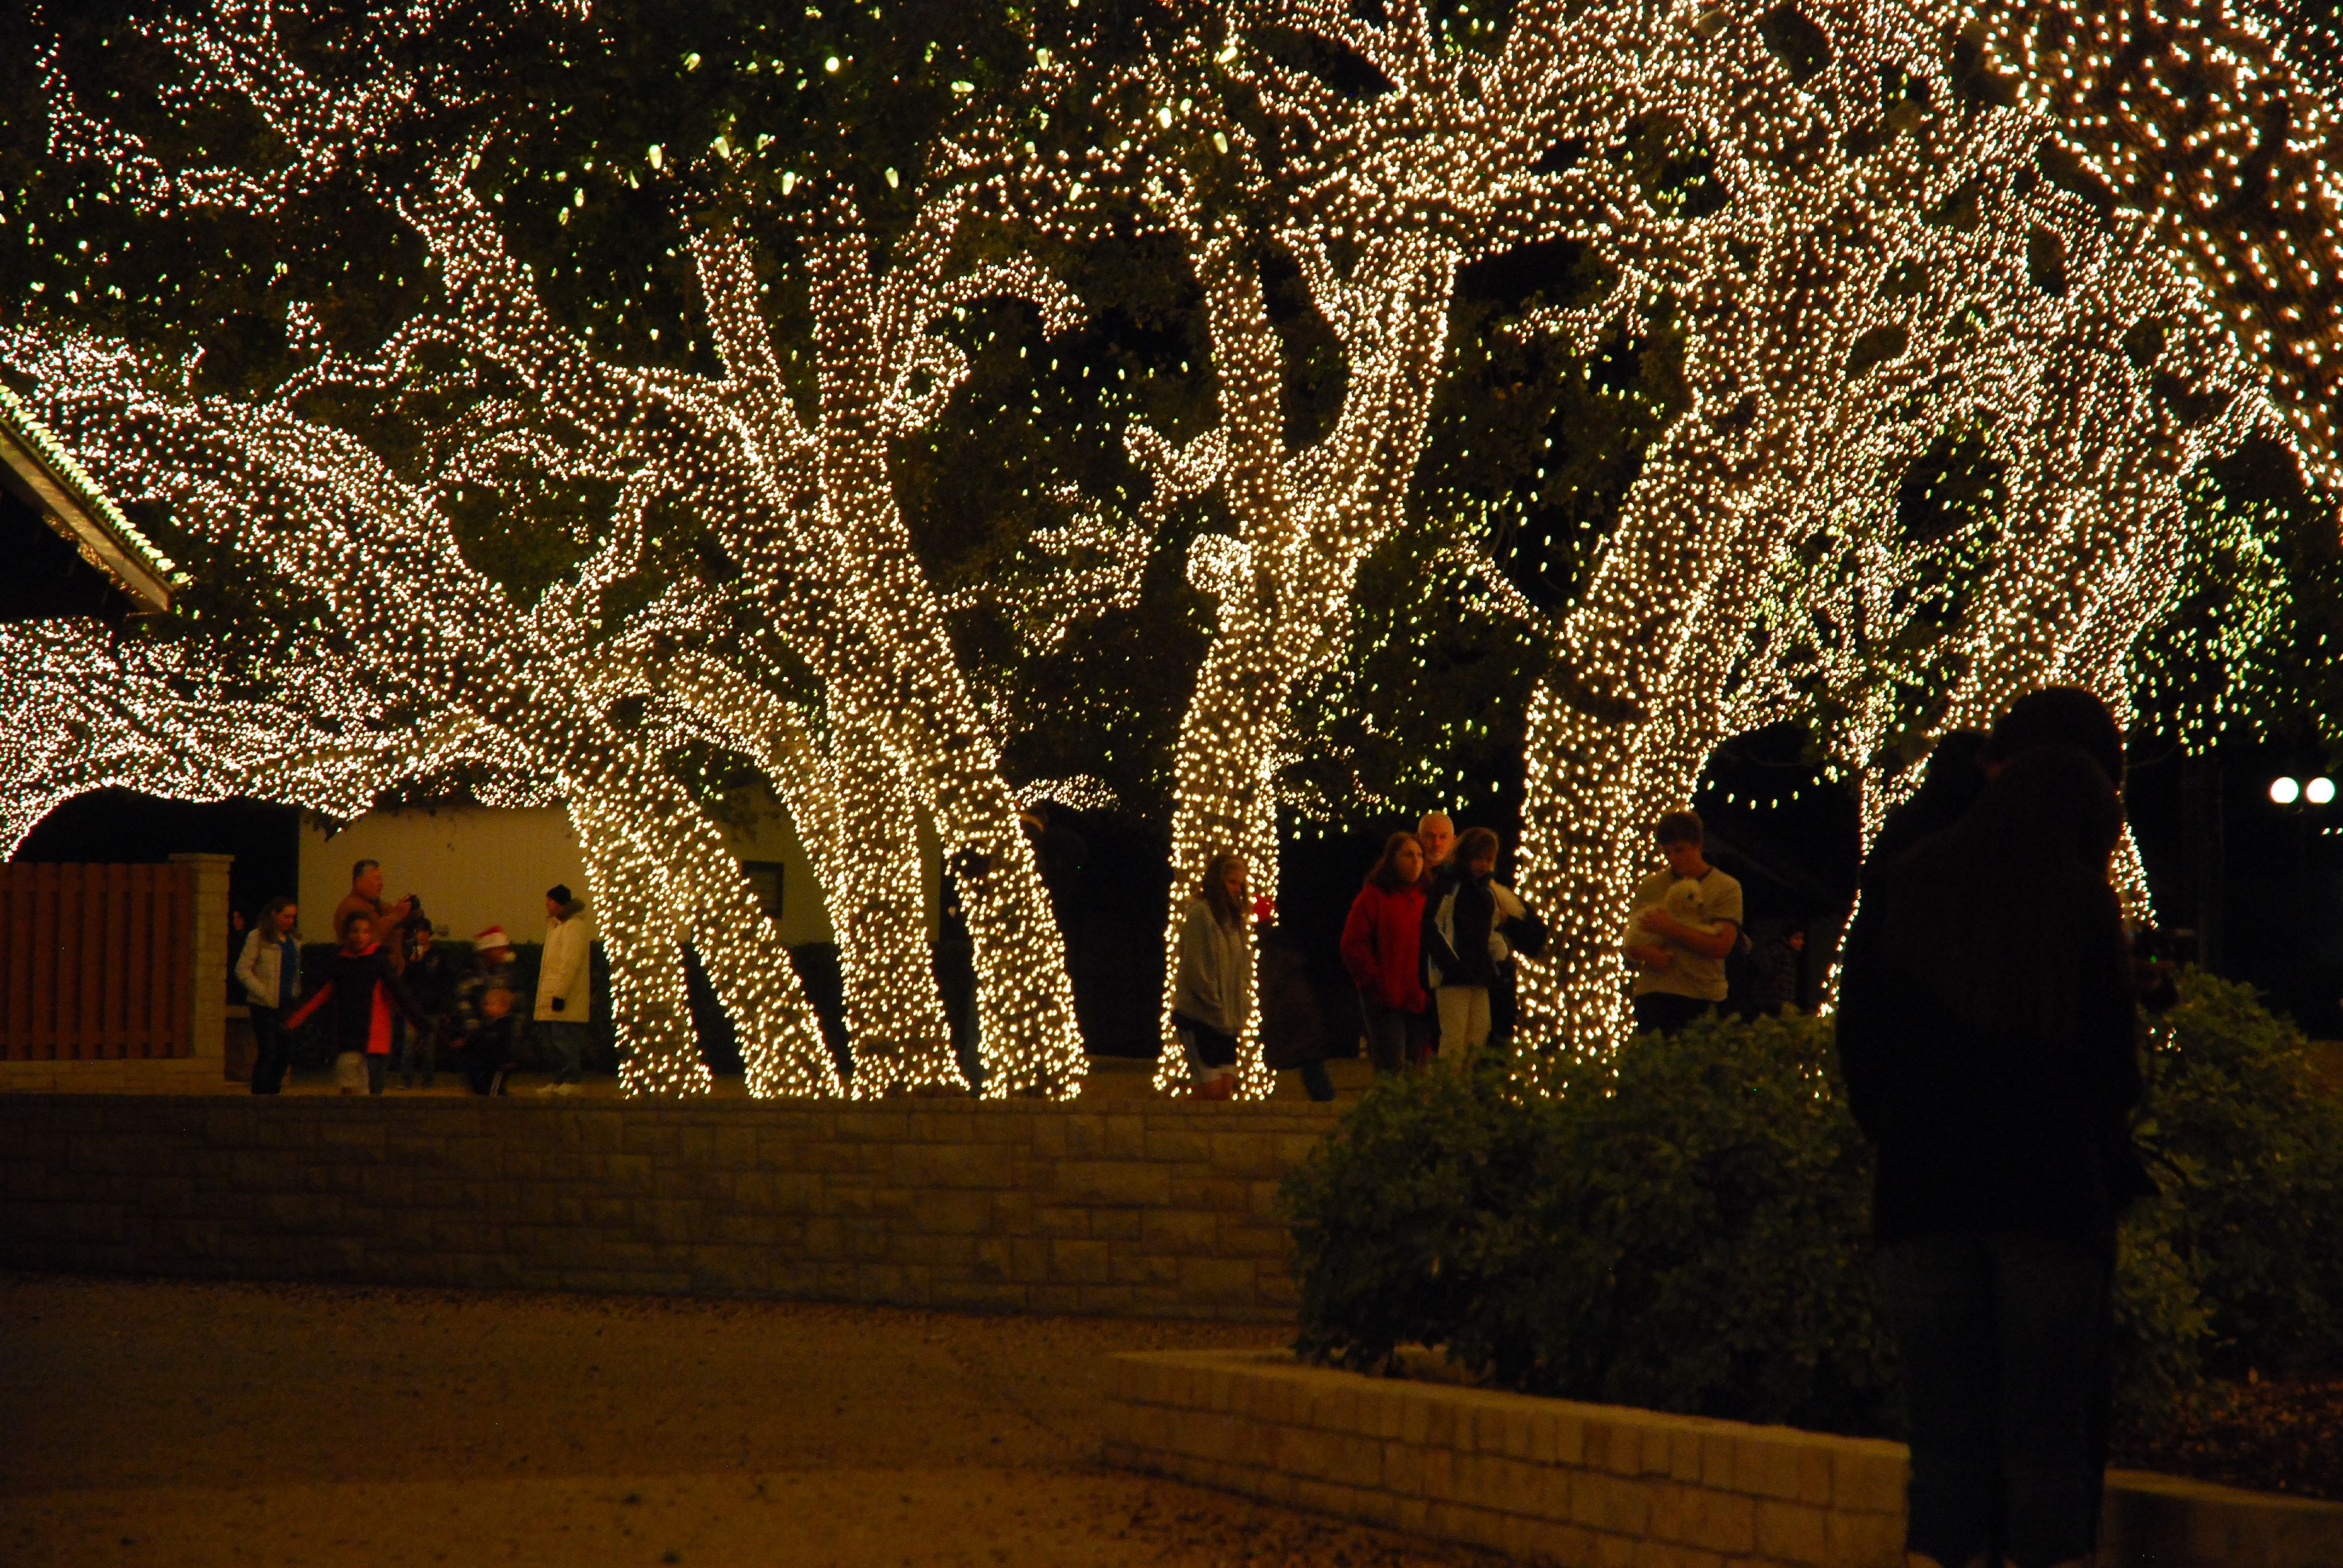 Light Display In Johnson City Texas At The Electric Company Christmas Lights Christmas Christmas Pictures